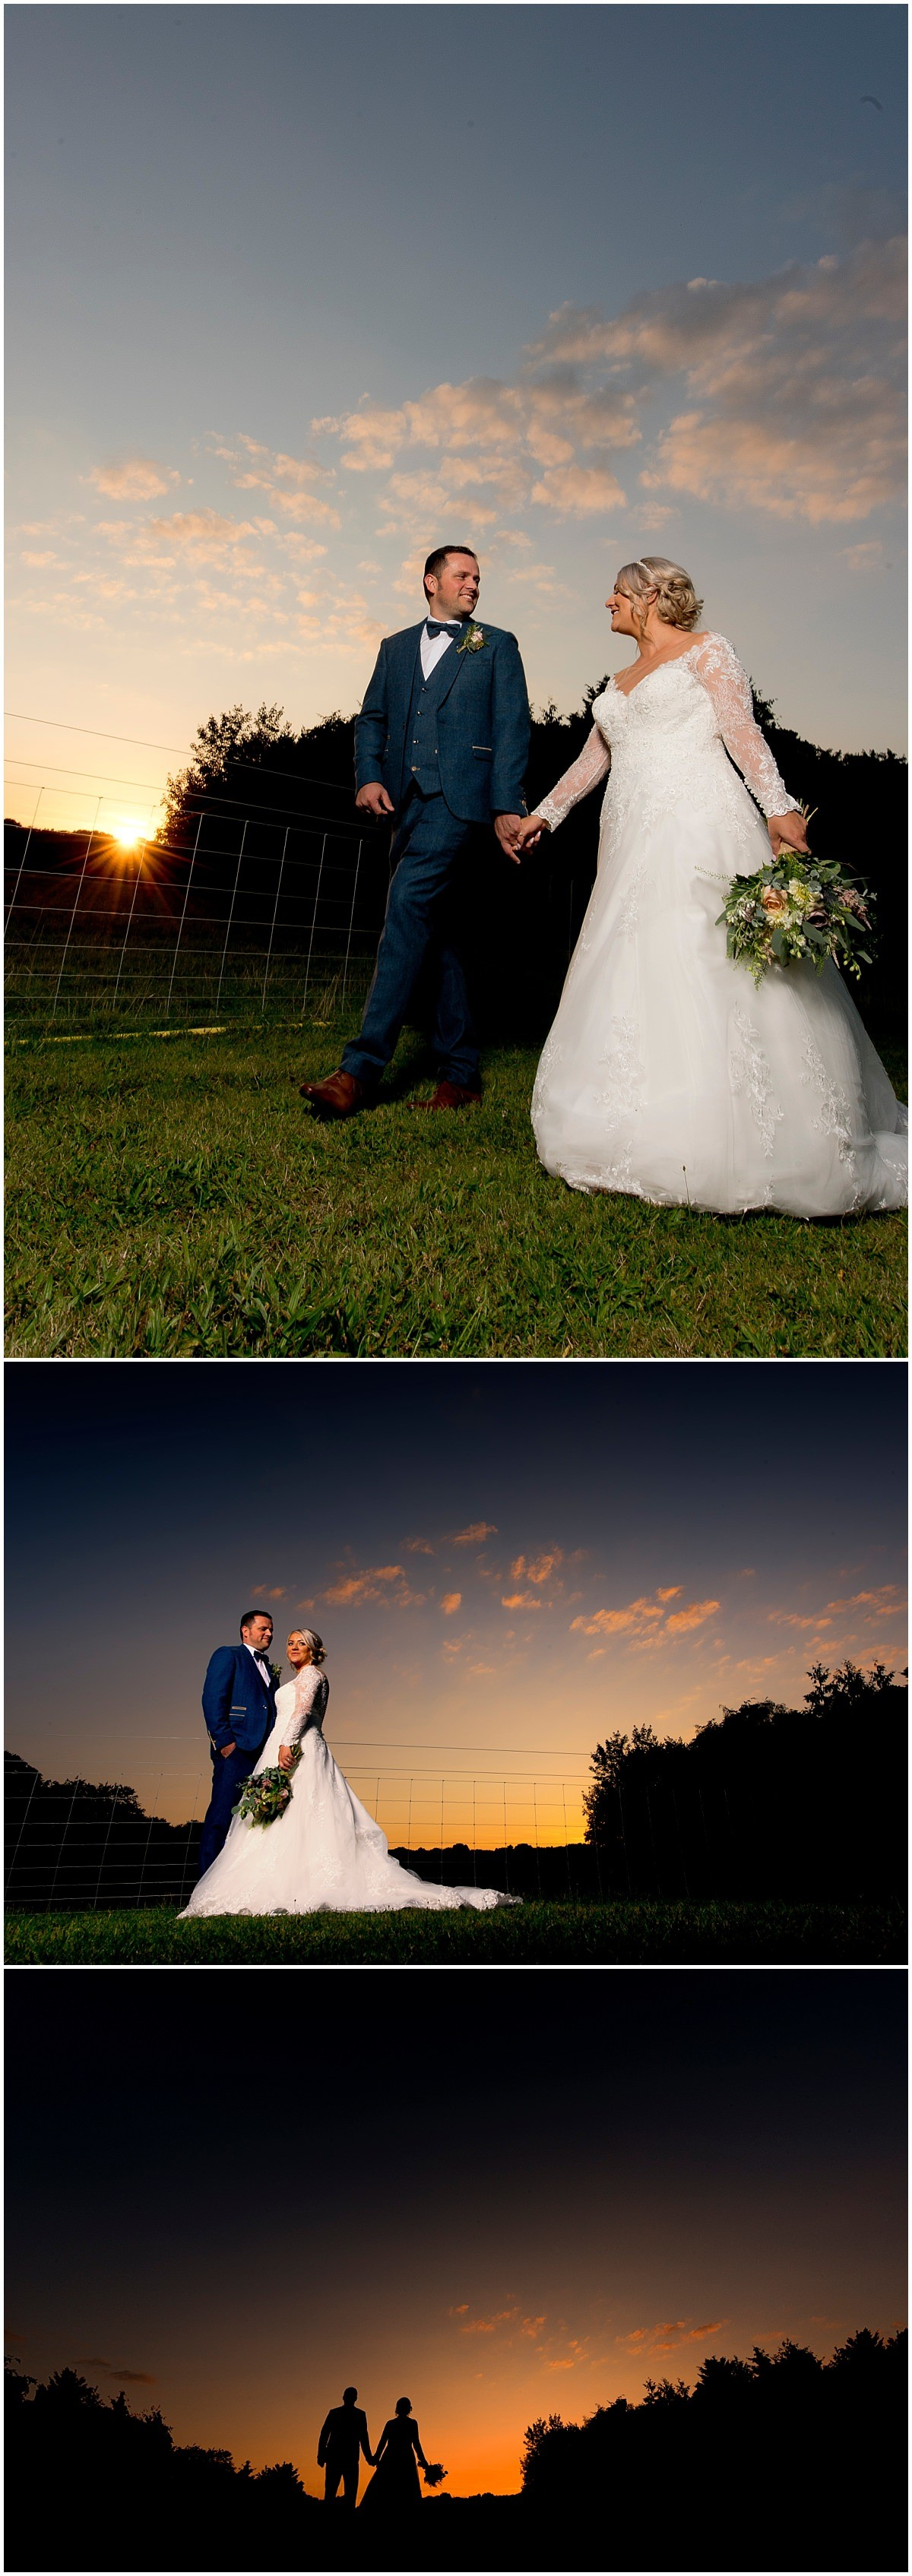 Creative bride and groom portraits at Hazel Gap Barn